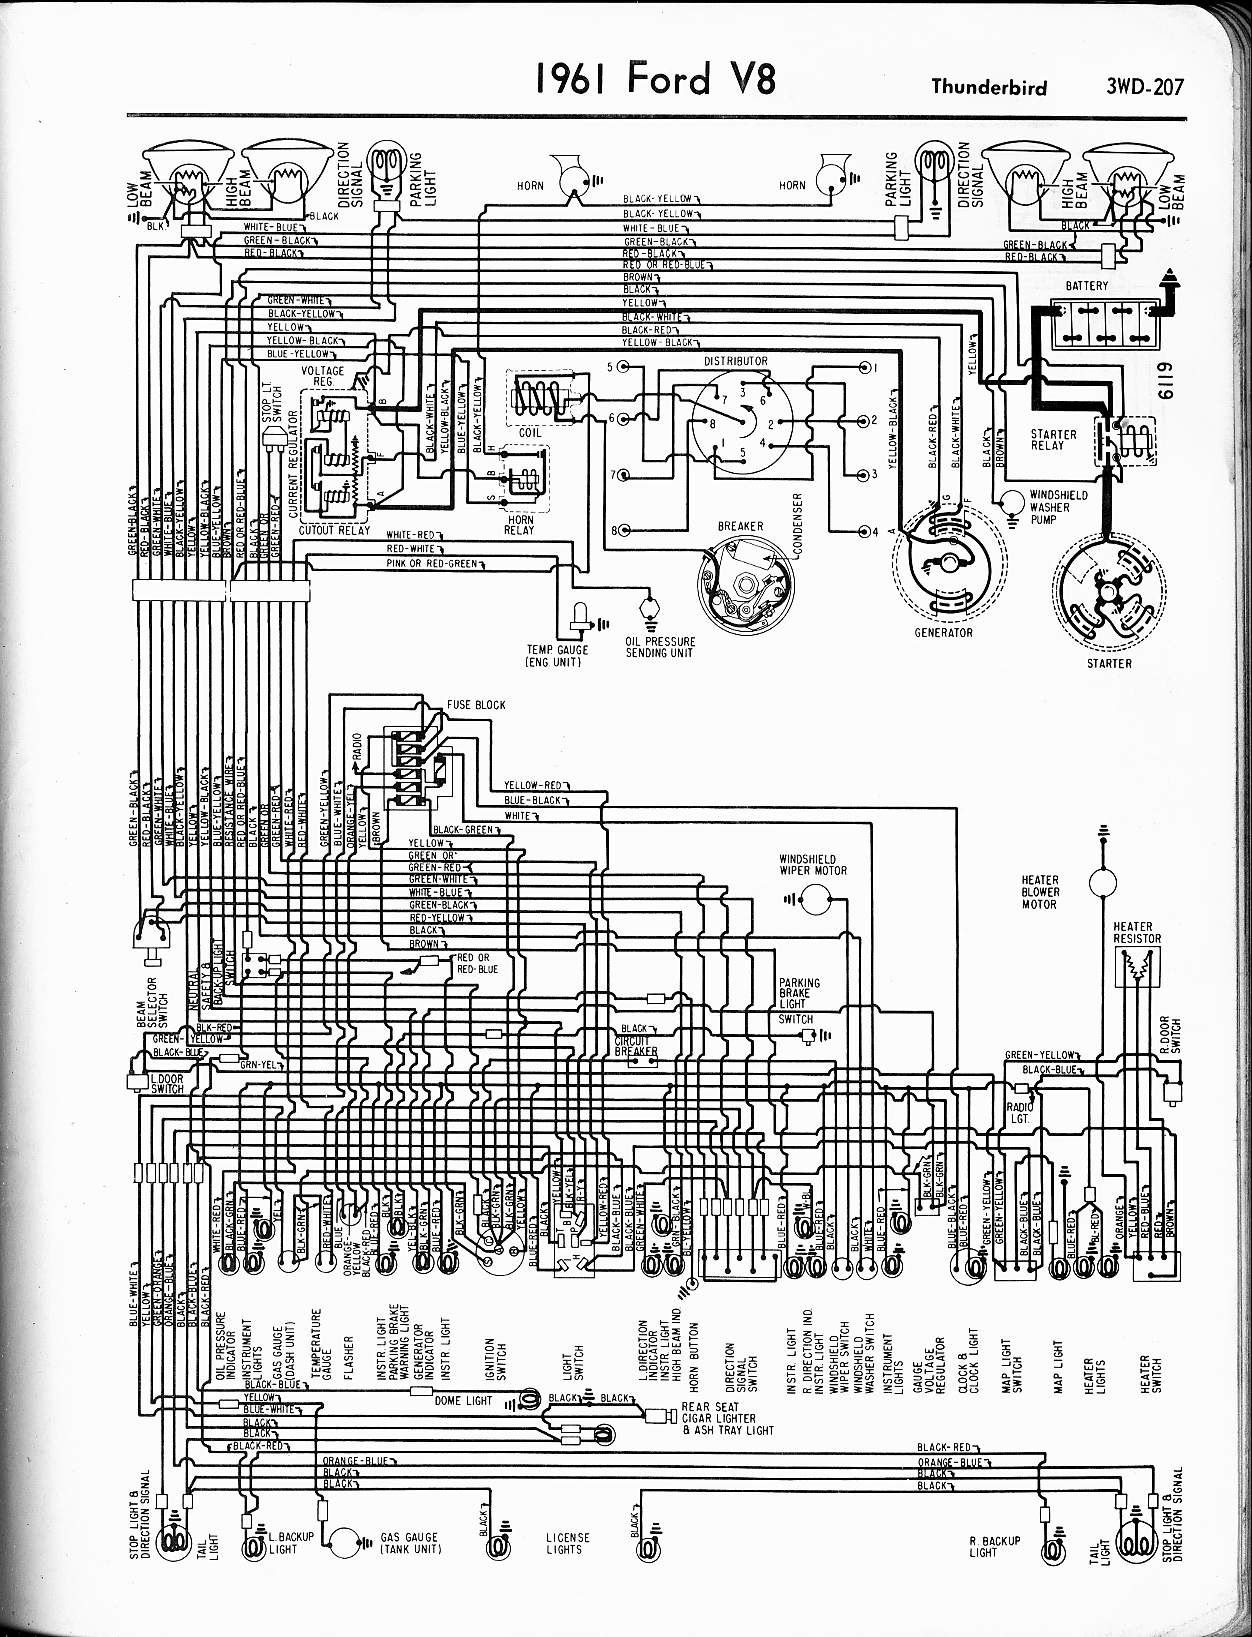 ford thunderbird wiring diagram detailed schematic diagrams rh 4rmotorsports com 1965 ford thunderbird wiring diagram 1965 ford thunderbird wiring diagram